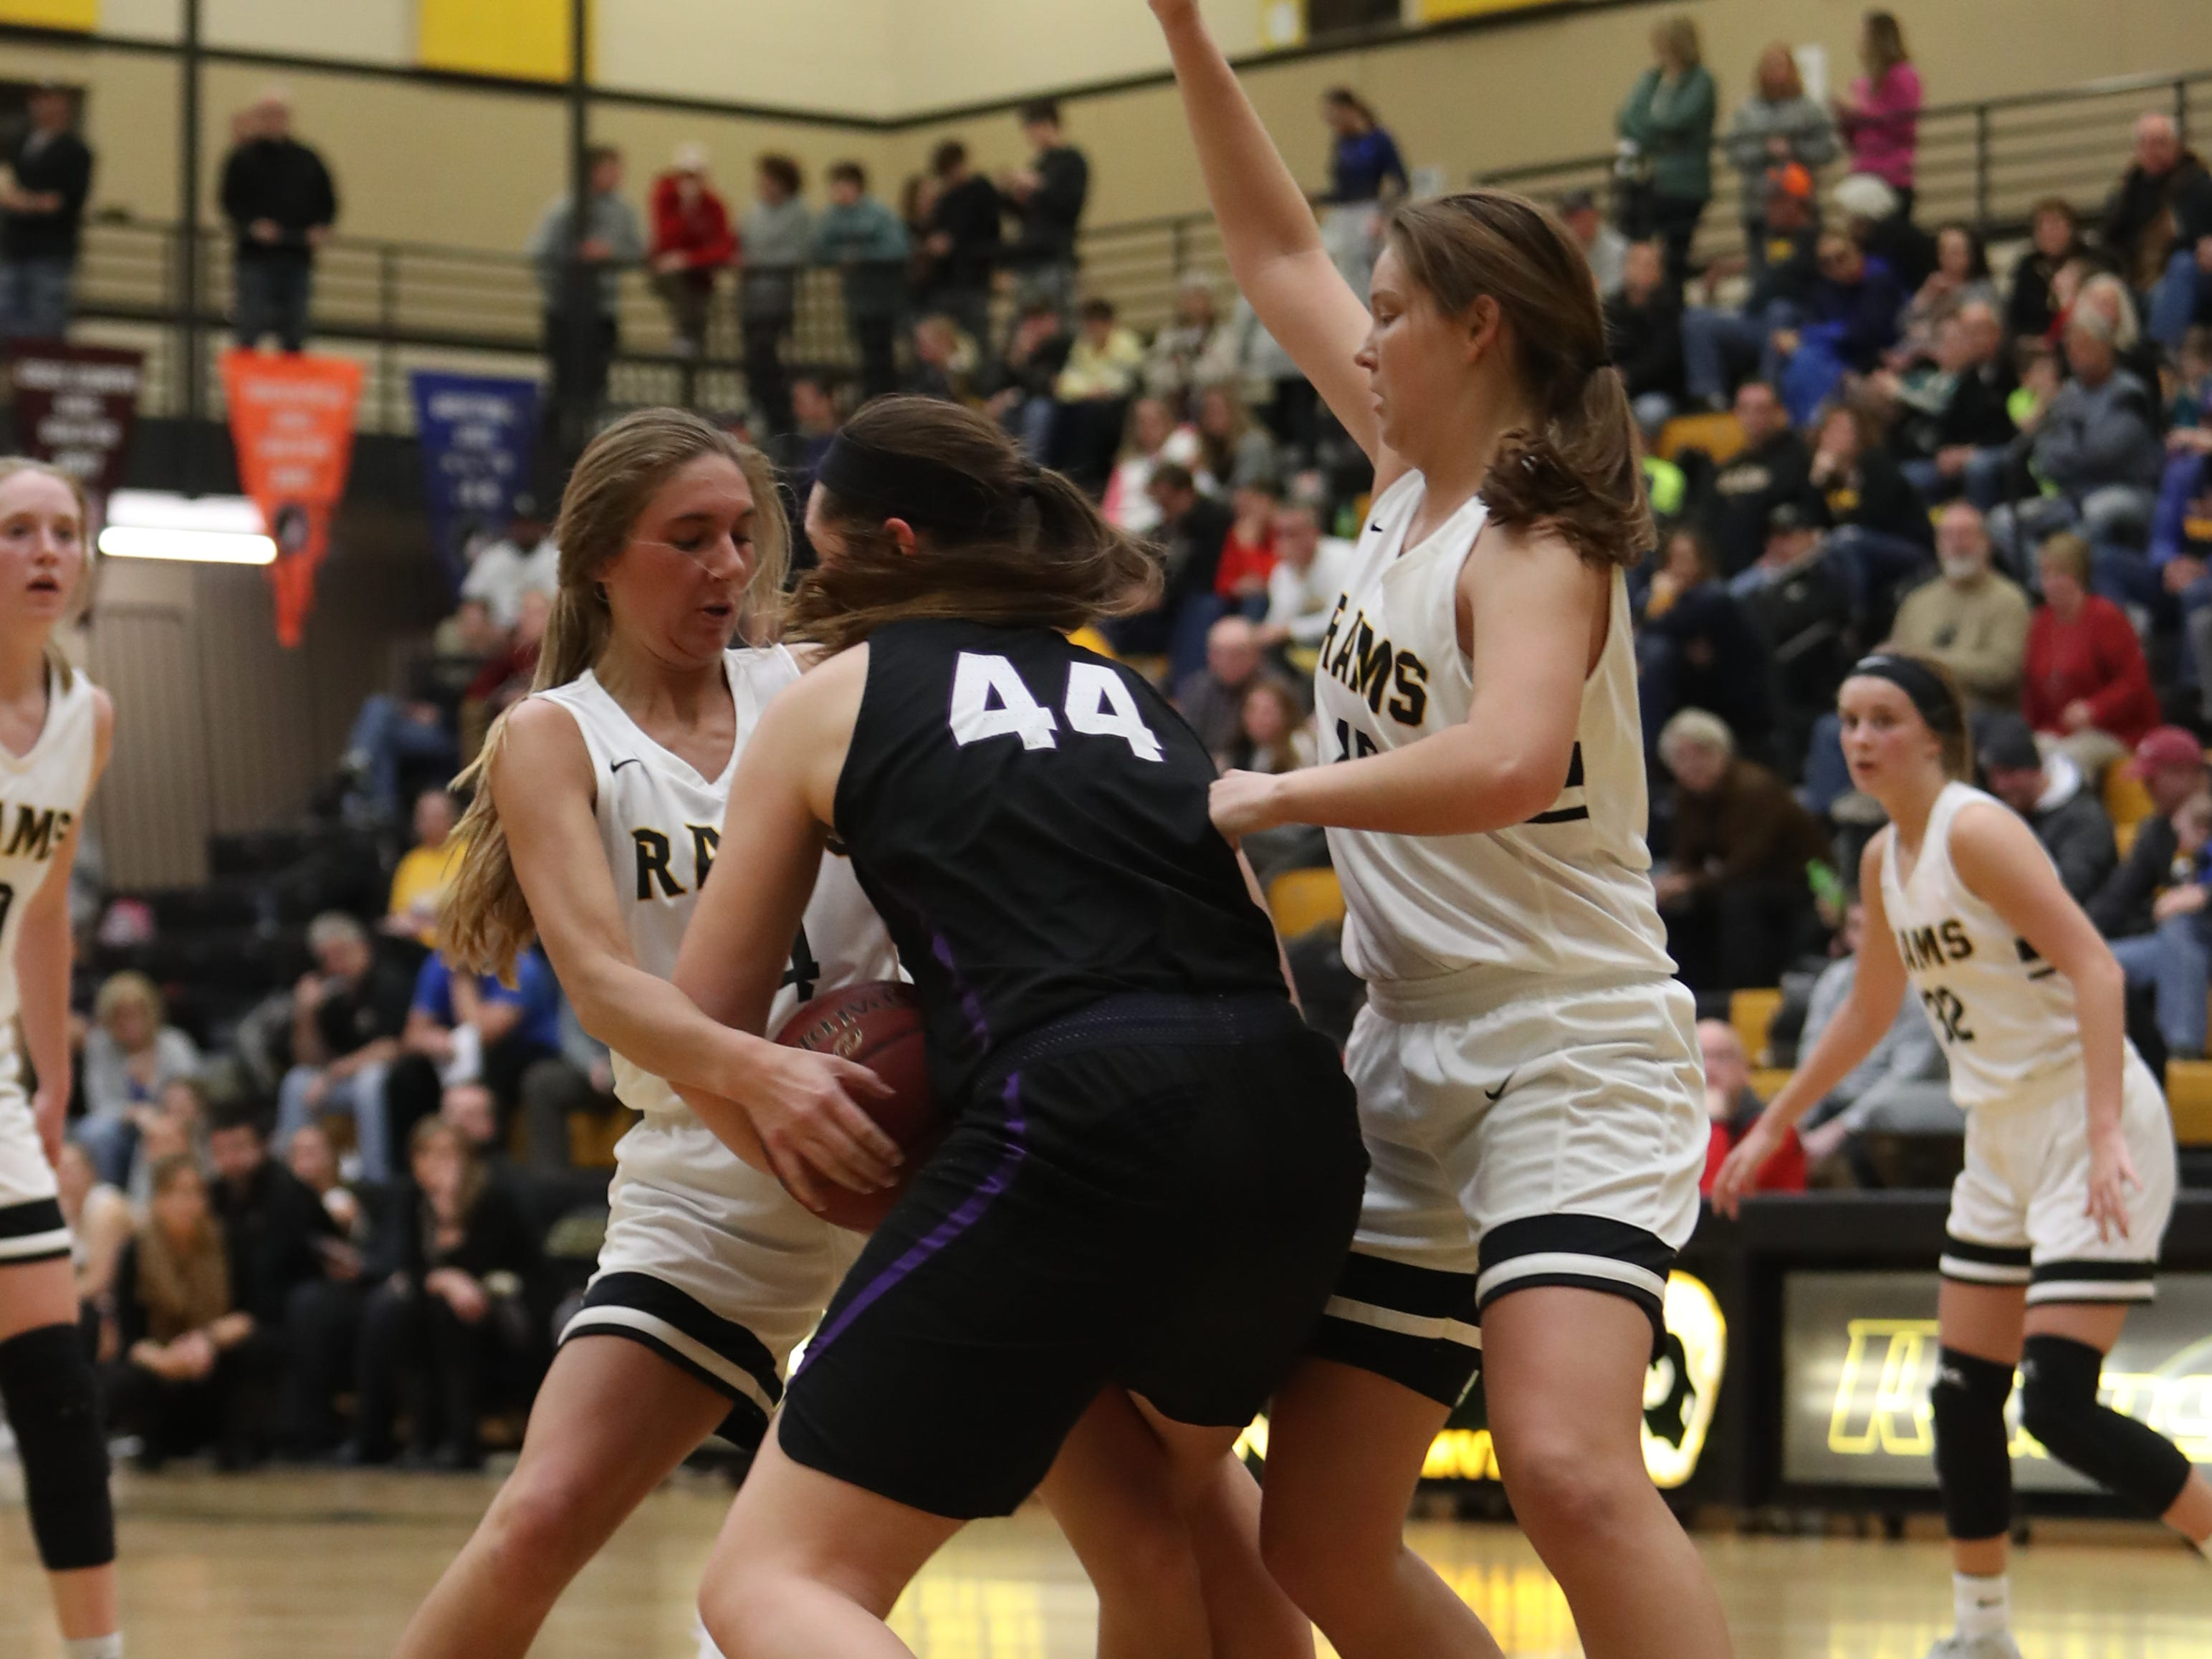 Waukee Warriors' Paityn Rau (44) and Southeast Polk Rams' Jessica Stuart (14) battle for a loose ball during a game Feb. 1, 2019 at Southeast Polk High School. The Warriors beat the Rams 66 to 43.